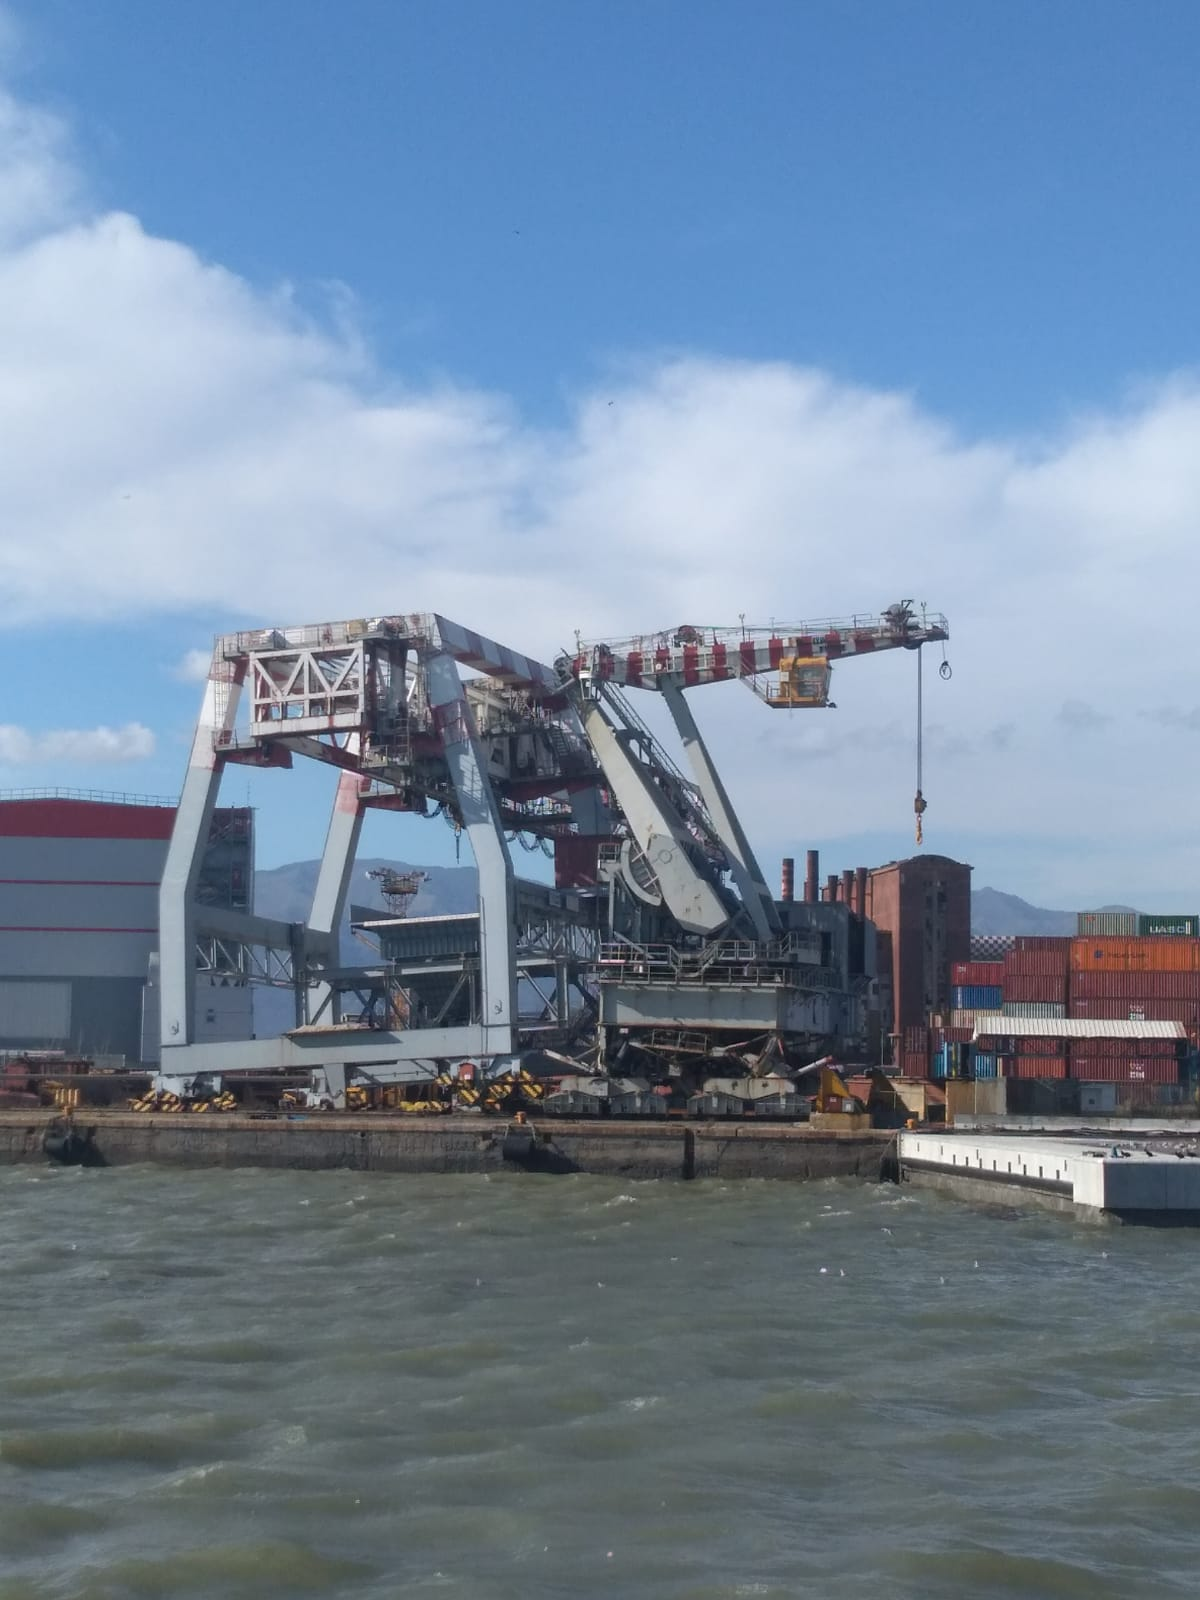 One crane crashed into another at ILVA Steel Group's terminal in Genoa